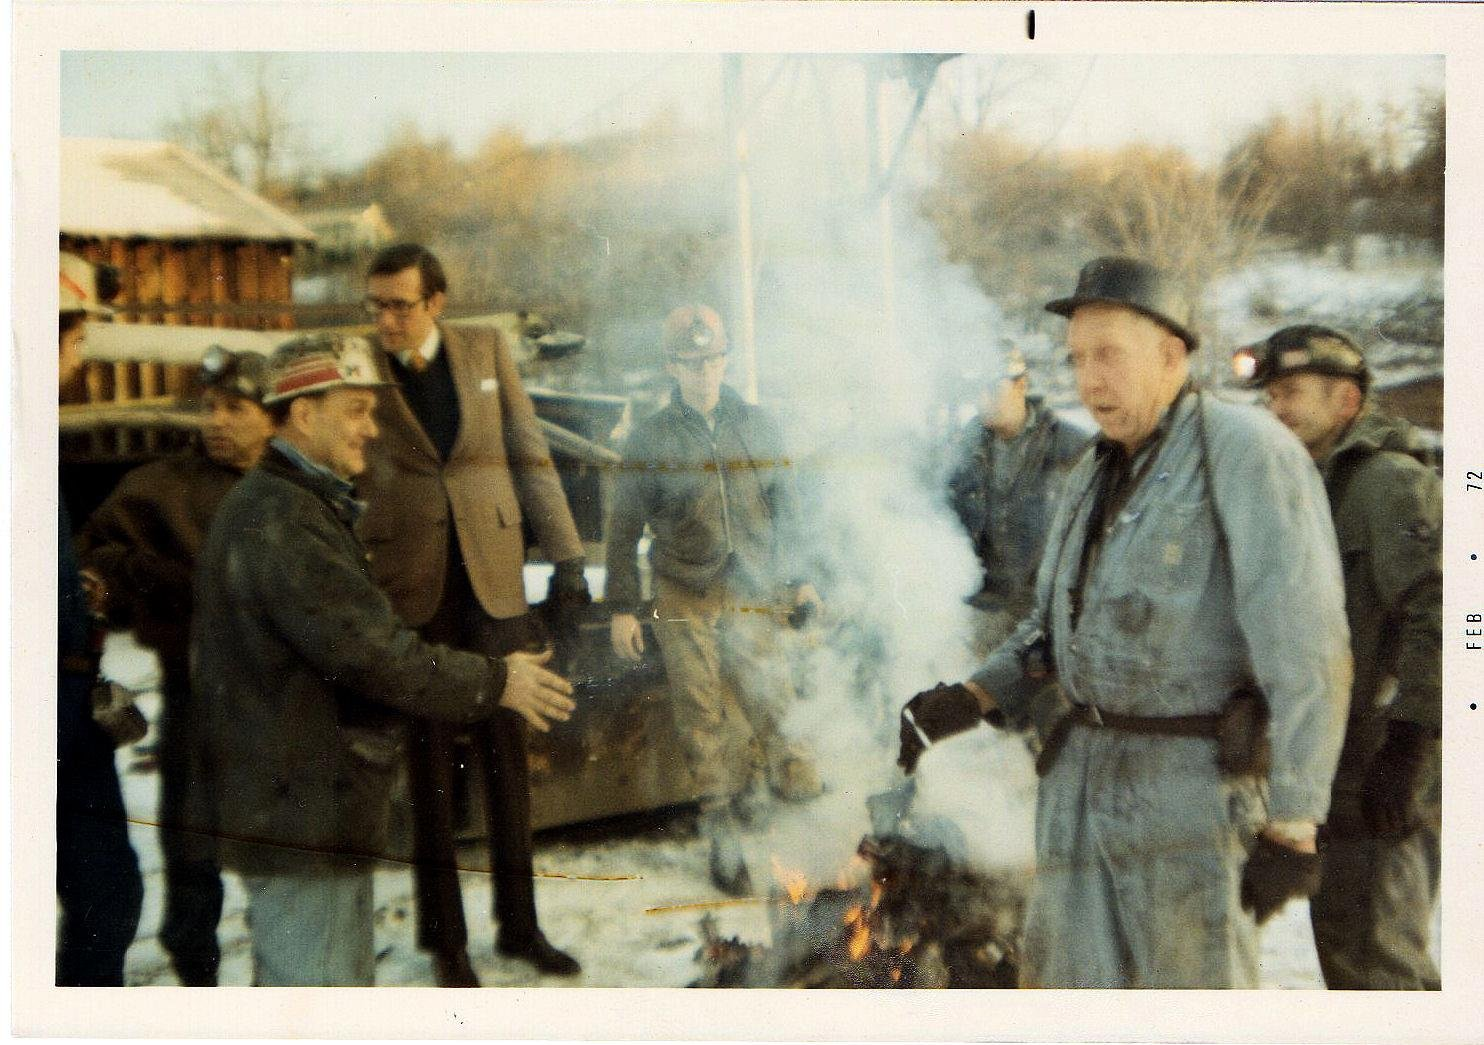 John D. Rockefeller, IV campaigning for governor at Siltix Mine, Mt. Hope, WV 1972 photo taken by Shirley Love. Those in the photo are Adrian Keeney, Governor Jay Rockefeller (left) and Junior Coleman, far right.